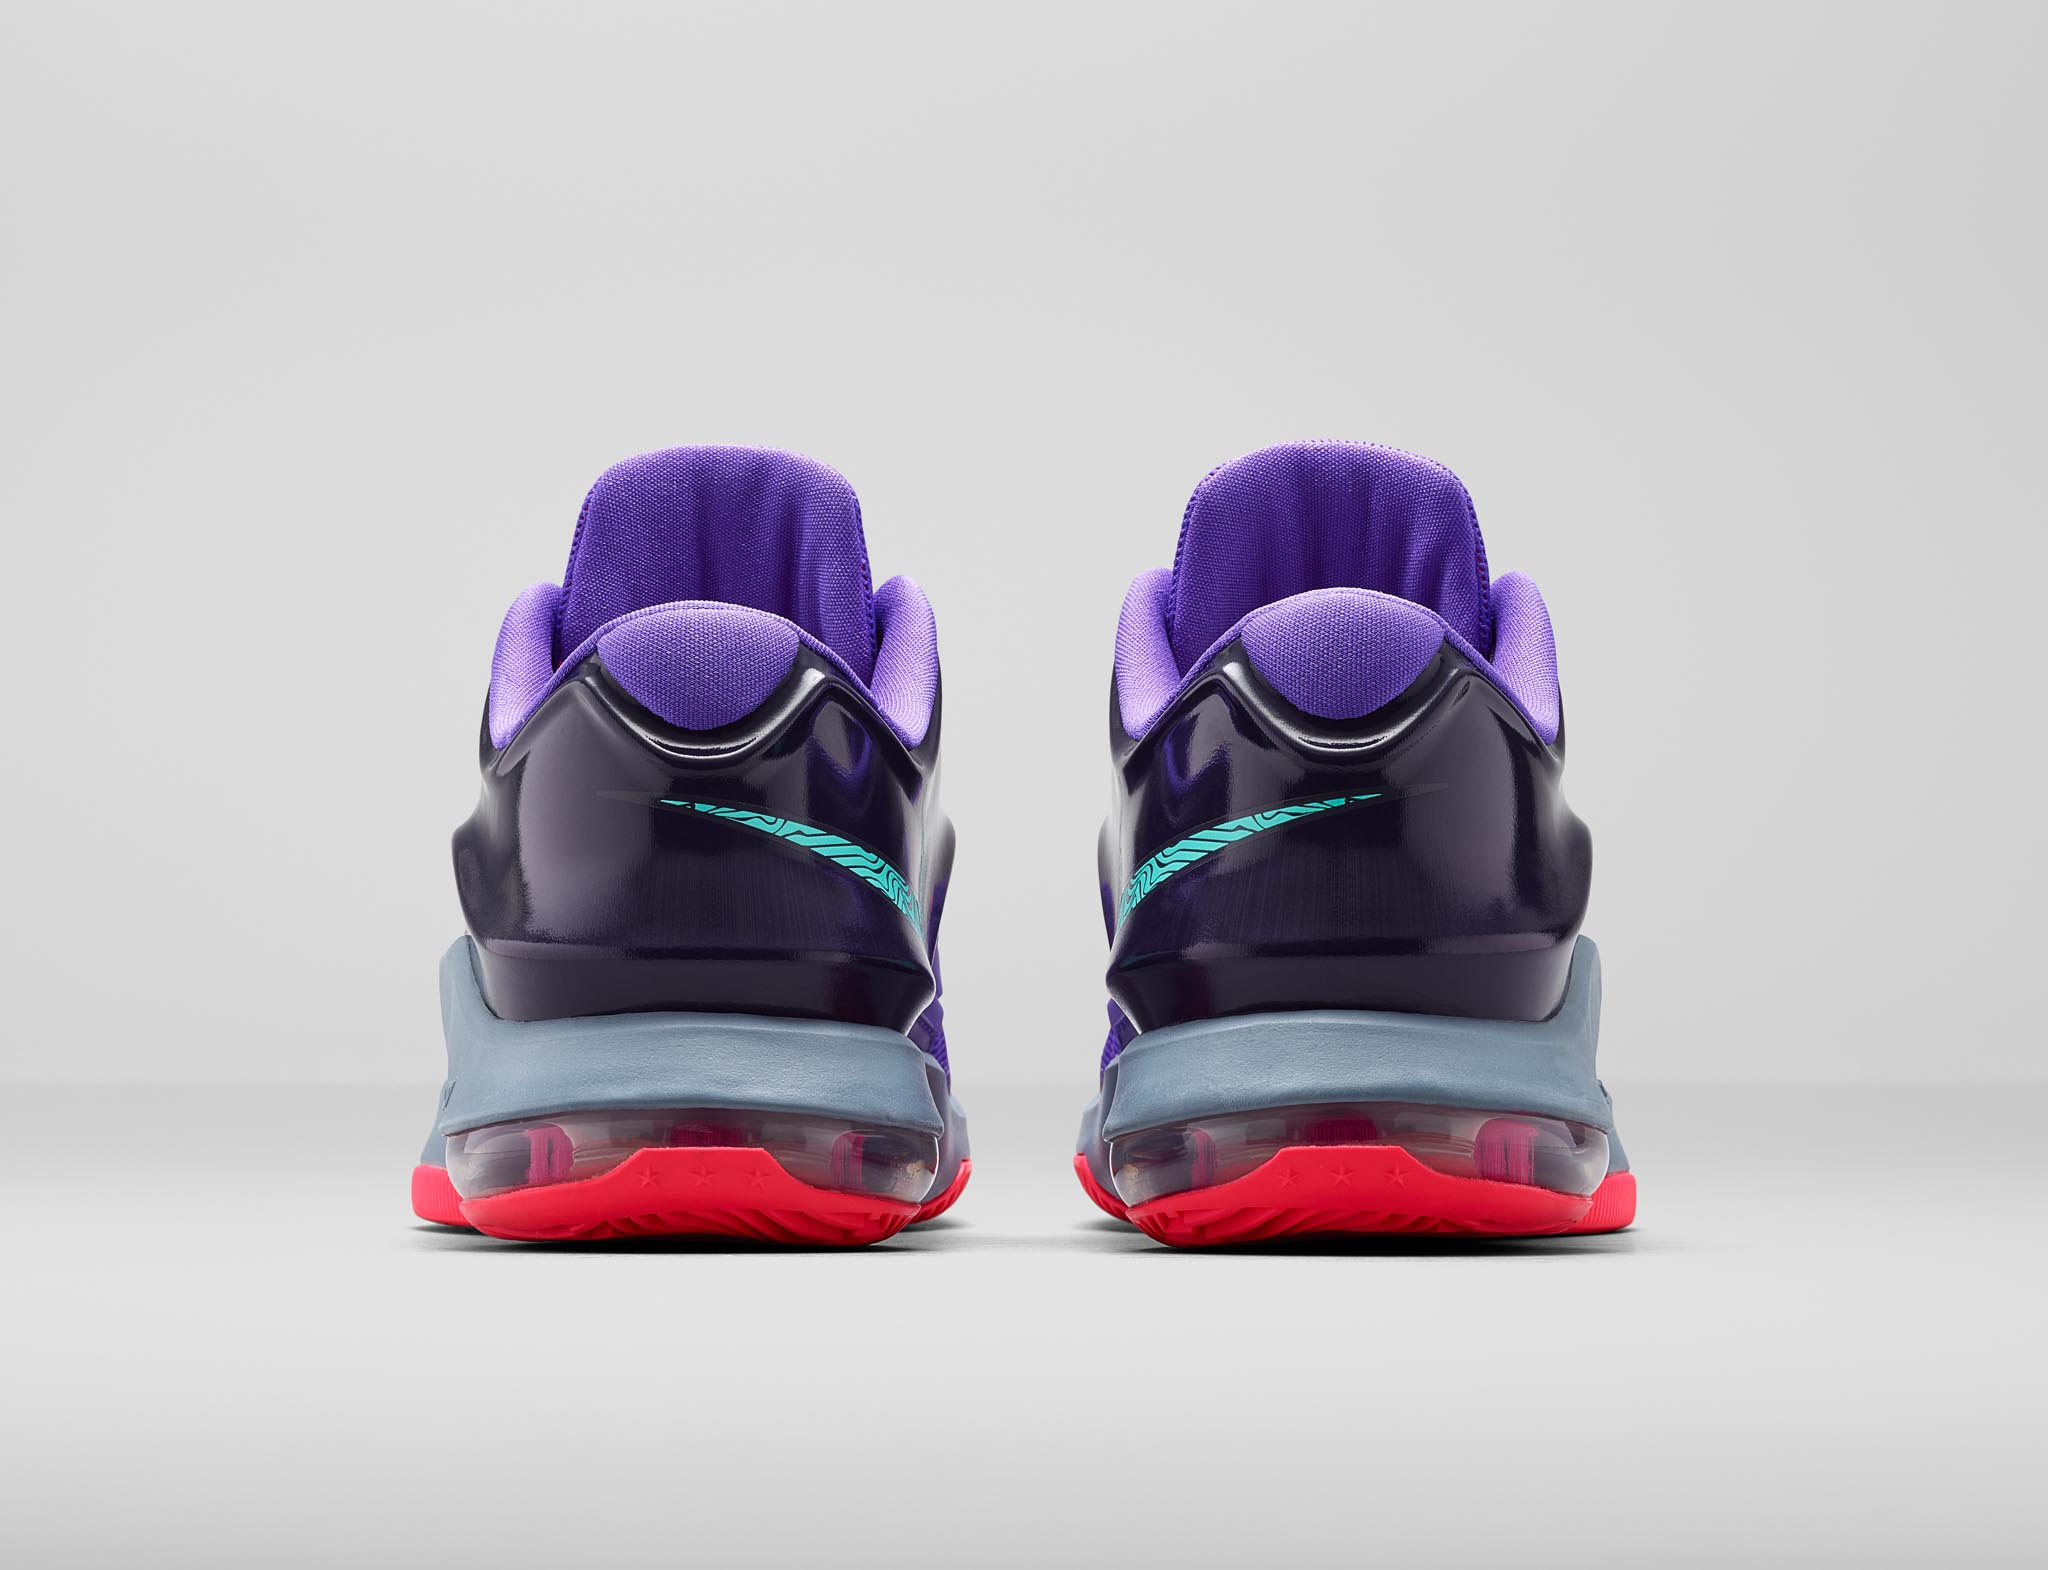 size 40 15921 263f8 ... cave purple hyper grape magnet grey bleached turq larger image ce180  7ca34  store kd7 lightning 534 capturing nycs electricity nike news 5f06a  80279